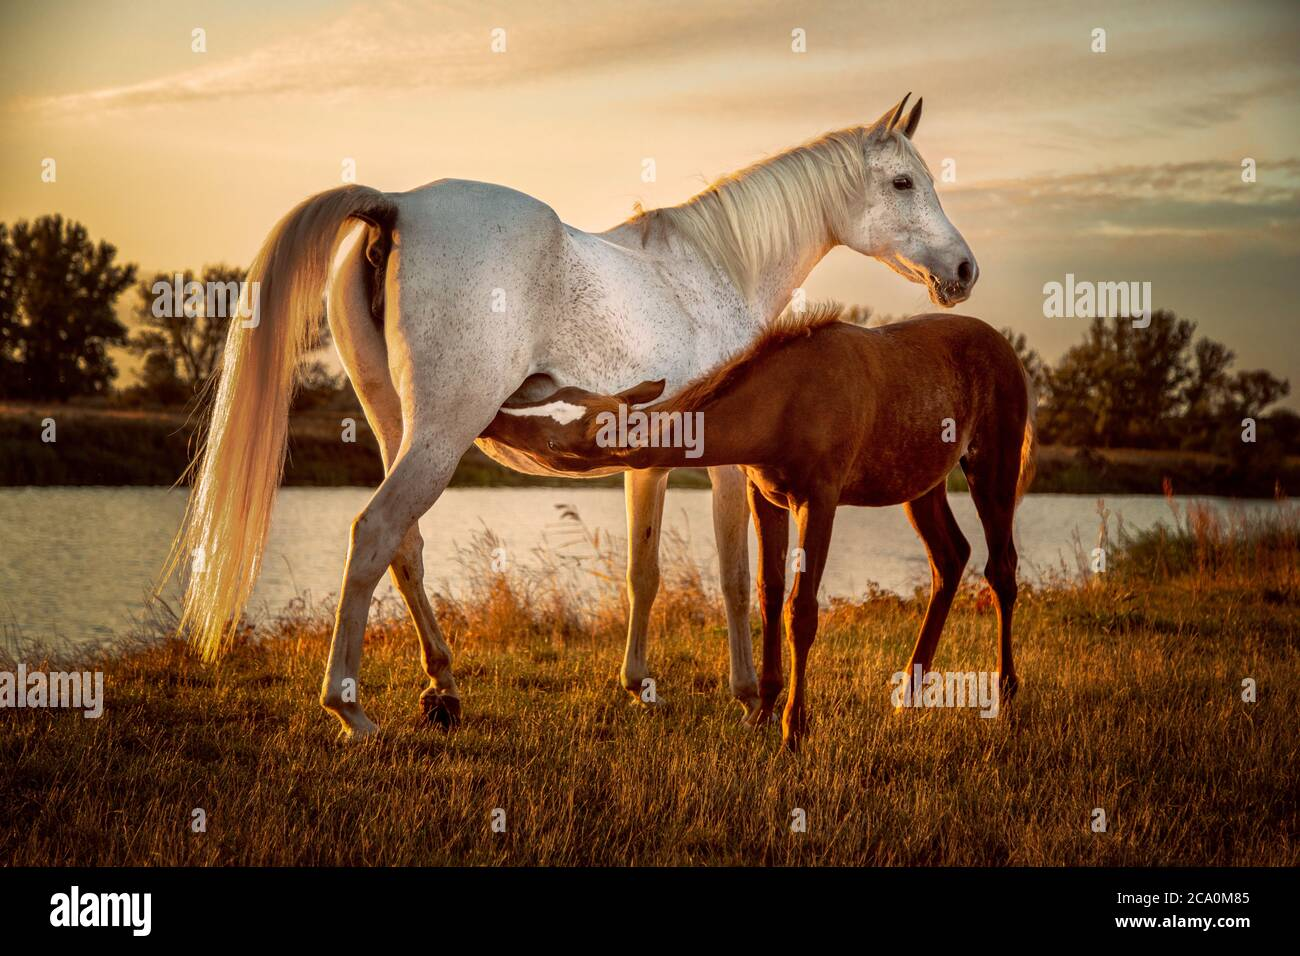 Page 7 Baby Horse Mom High Resolution Stock Photography And Images Alamy